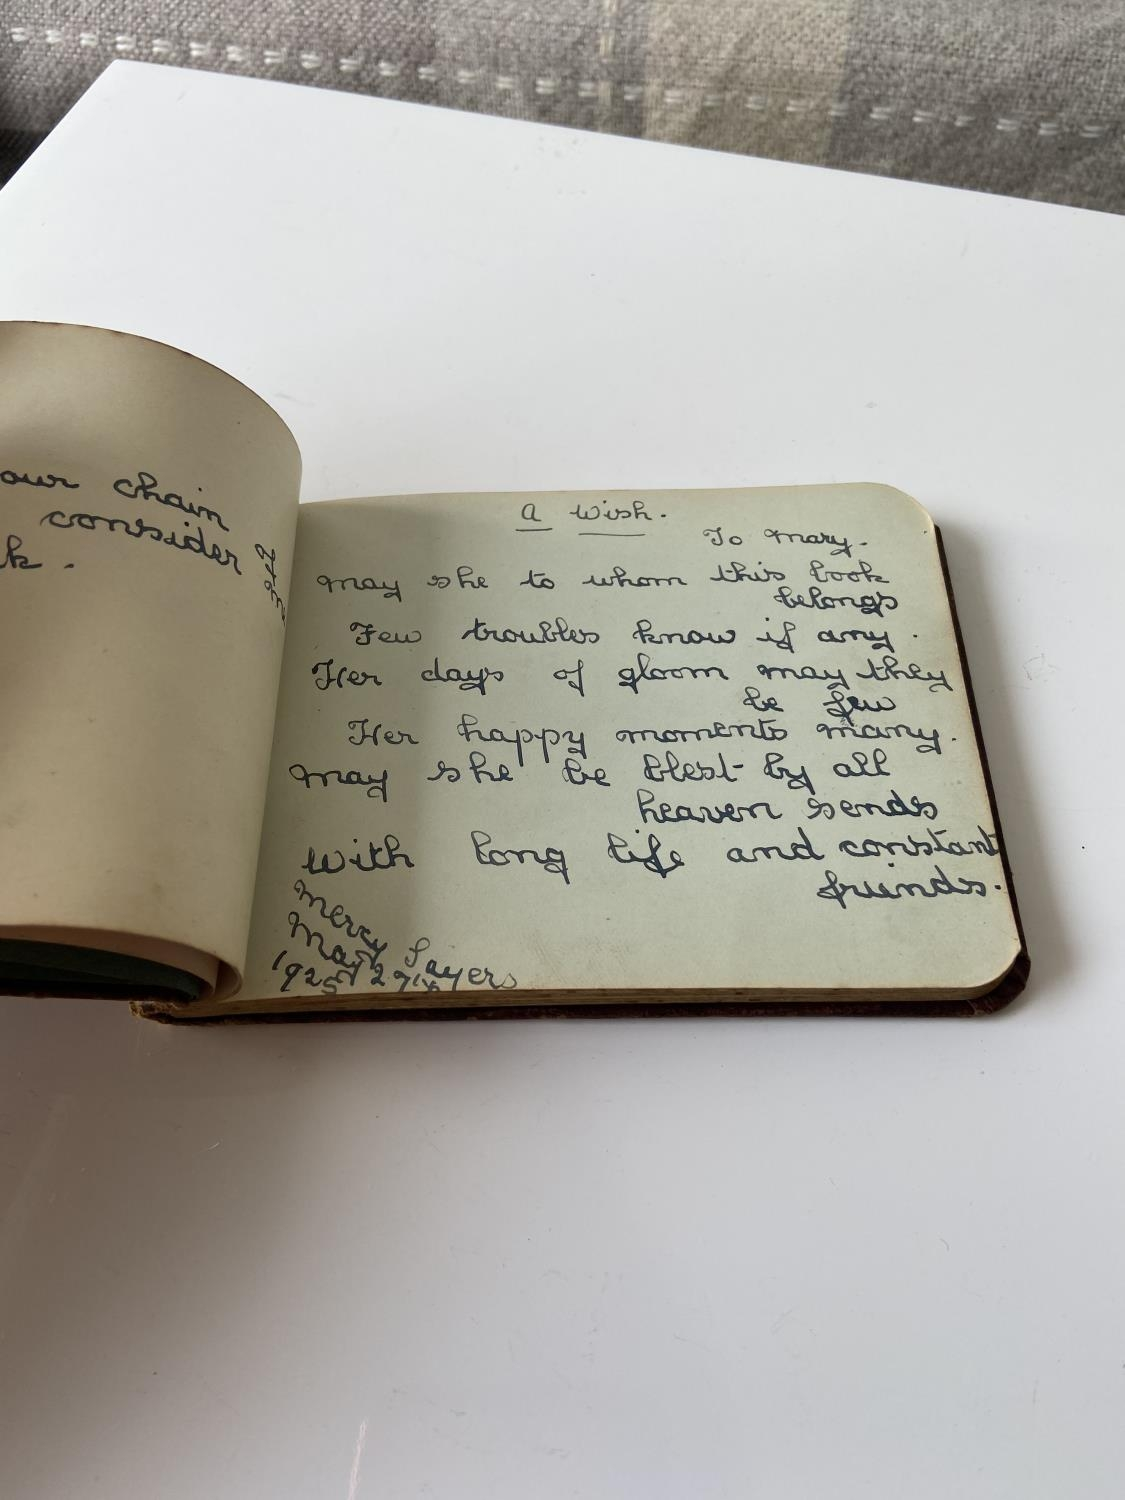 An old autograph album containing various poems, sayings & doodles - Image 5 of 18